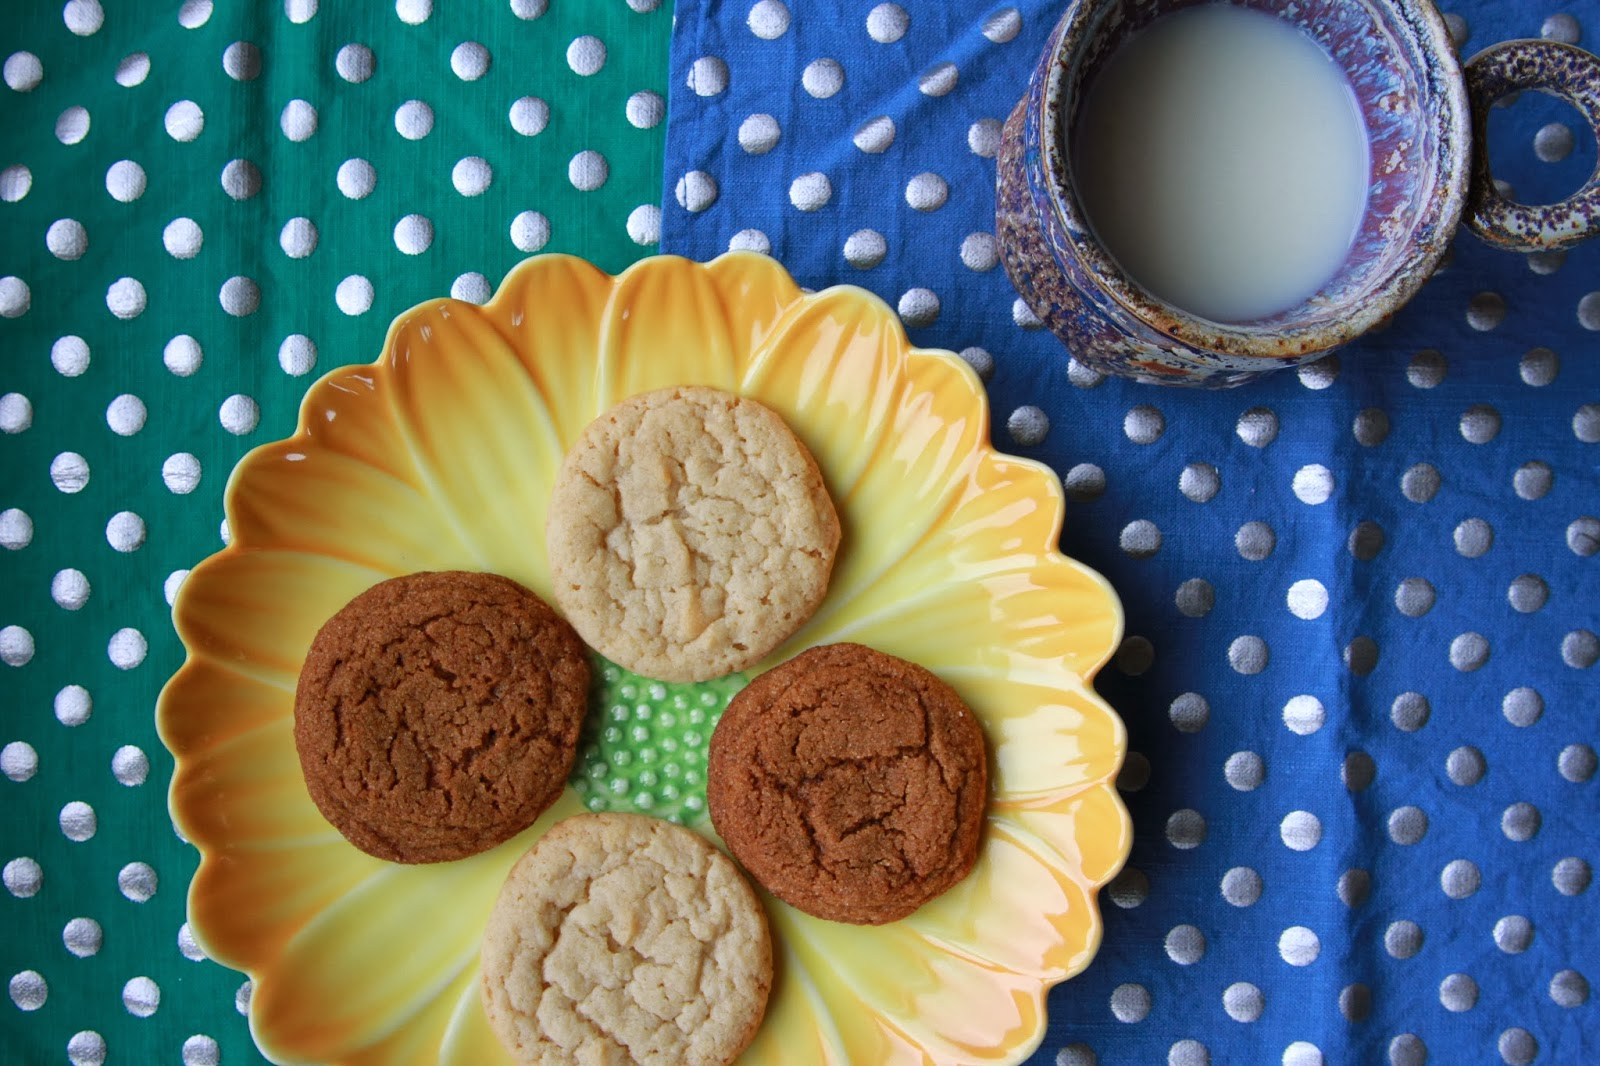 Watch Spicy Almond-Molasses Freezer Cookies video